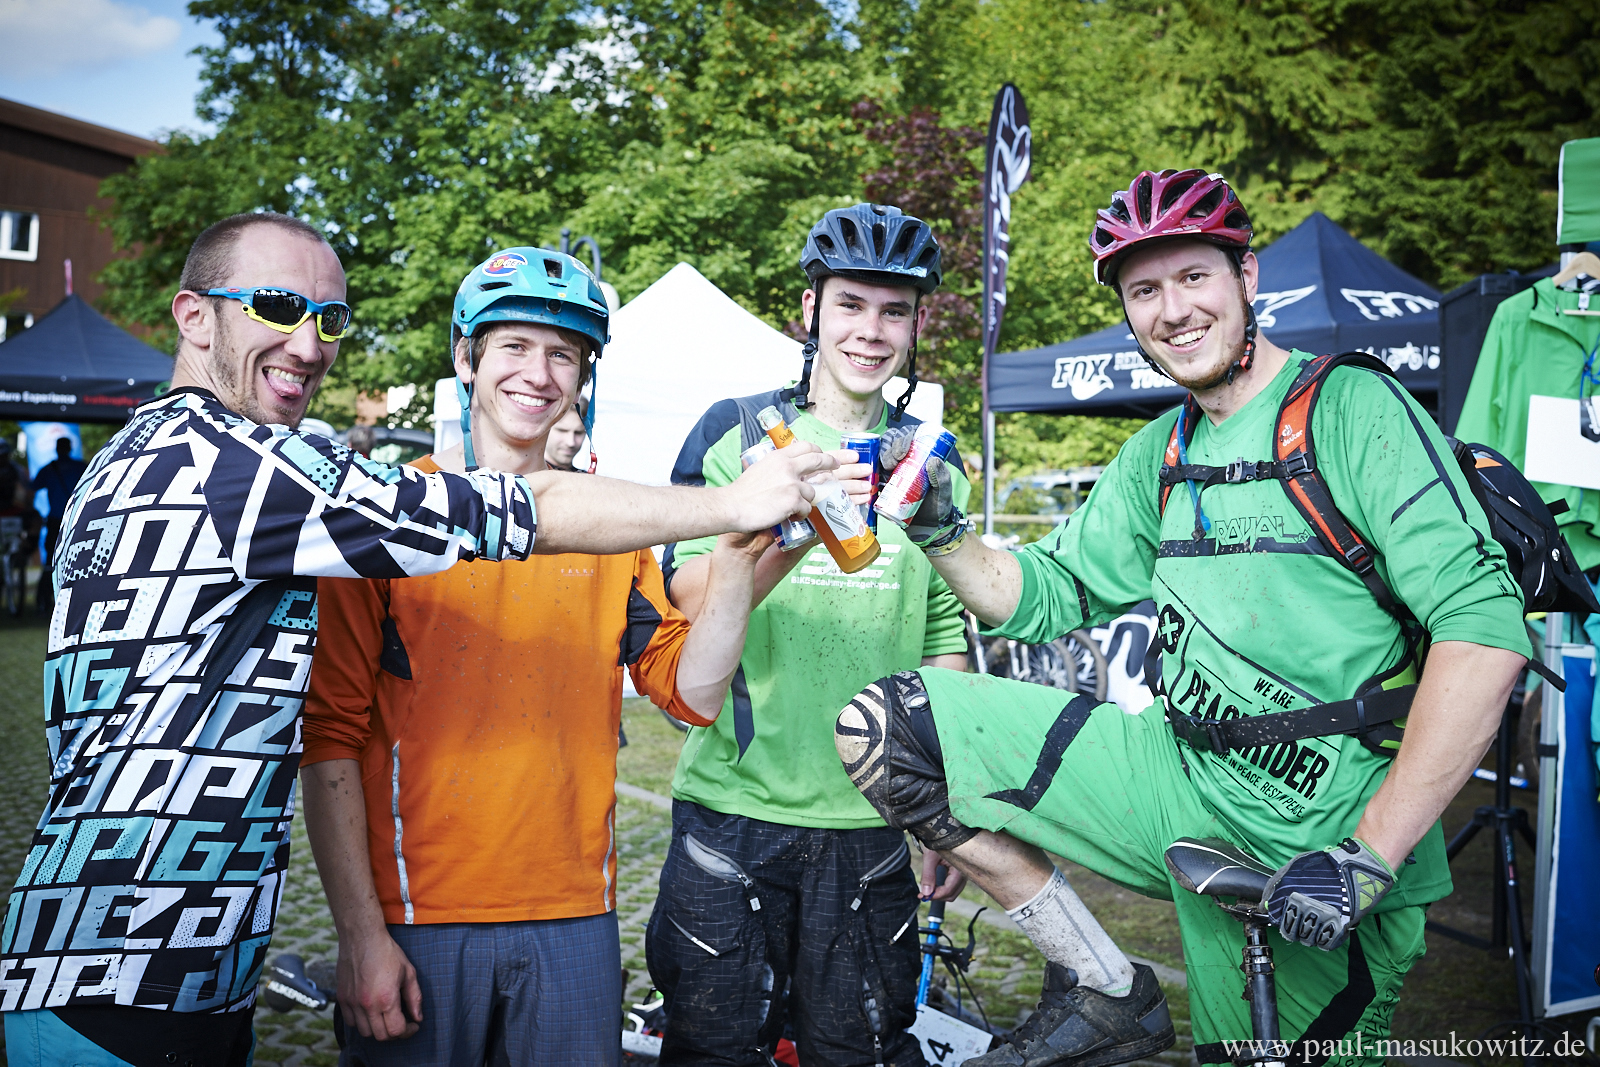 TrailTrophy in Rabenberg